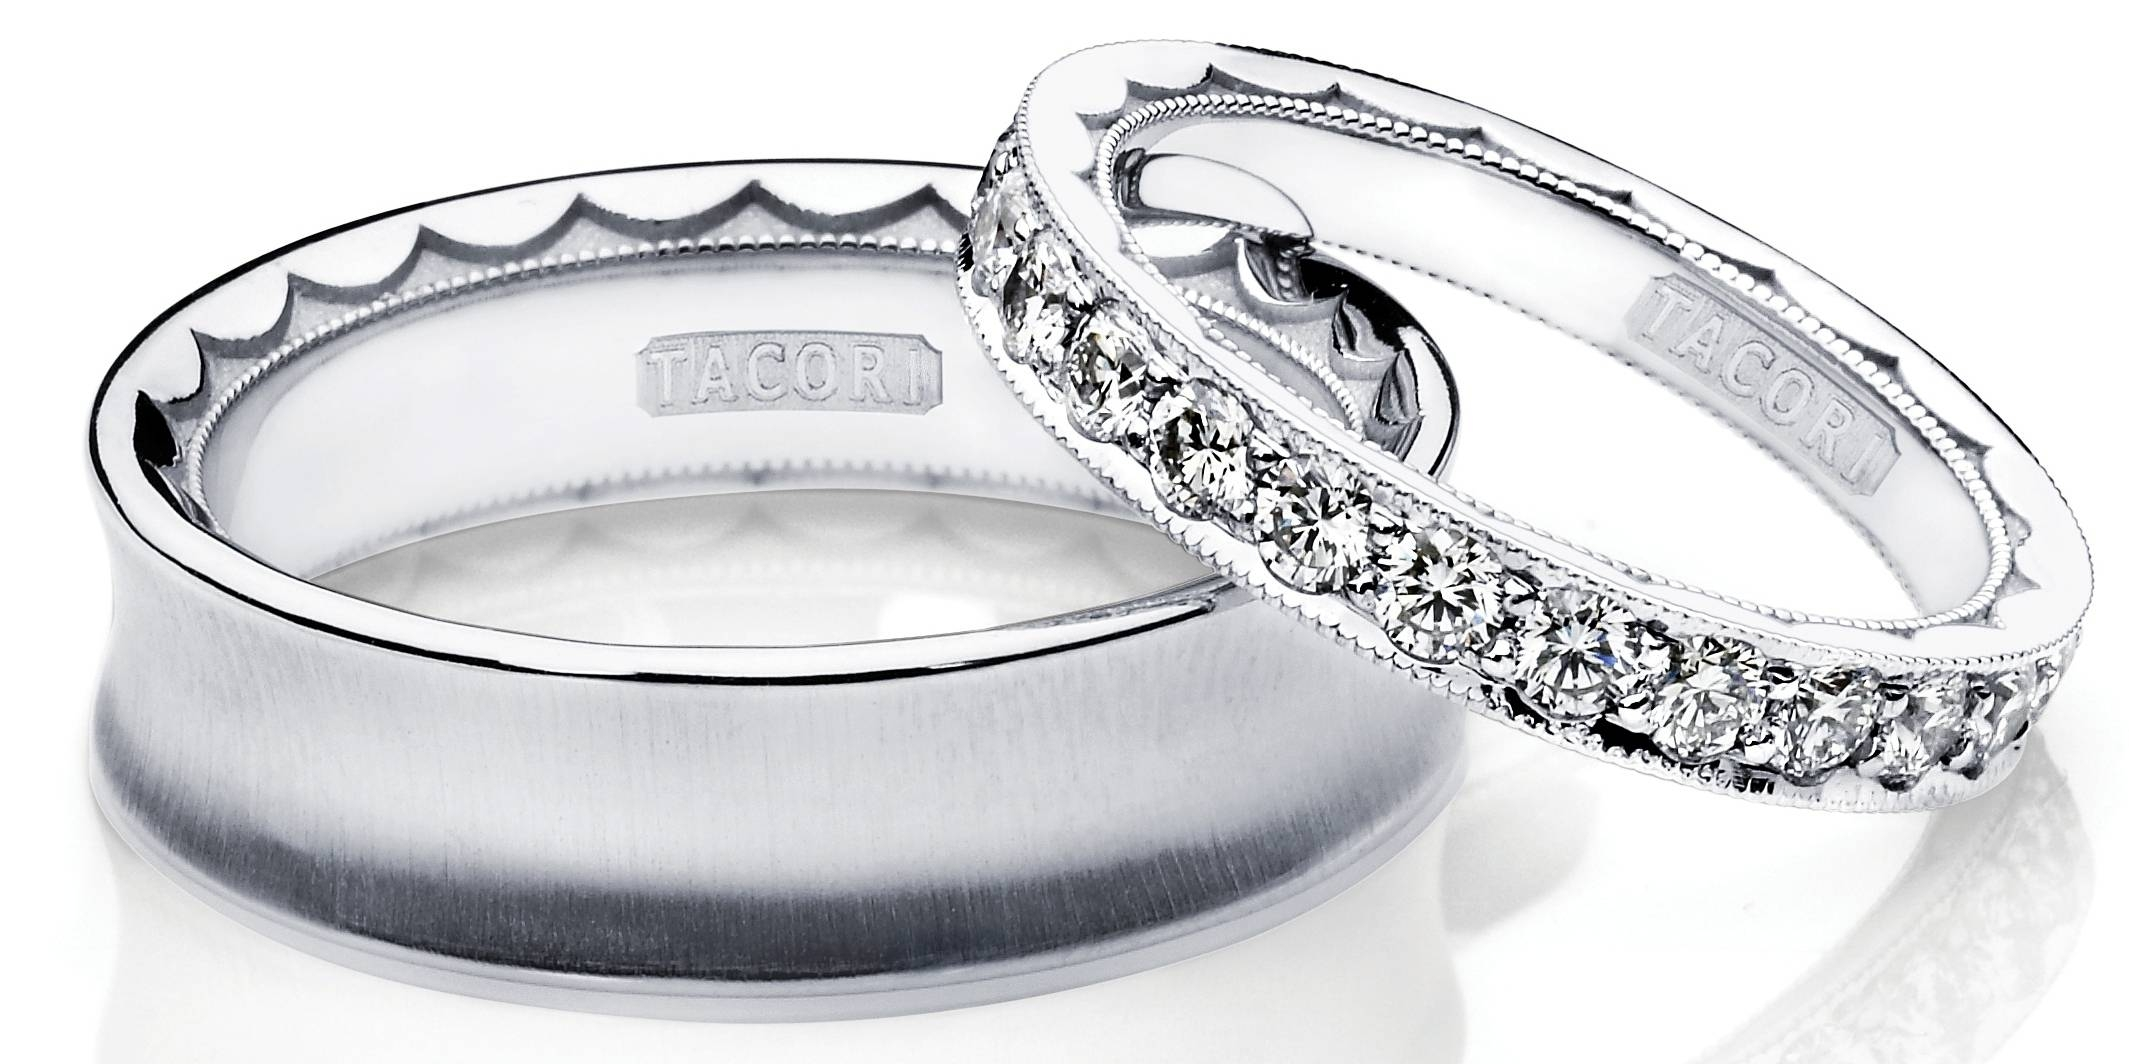 39 Platinum Wedding Band Sets, Platinum Diamond Ring Set: Wedding Intended For Platinum Wedding Bands For Her (View 1 of 15)